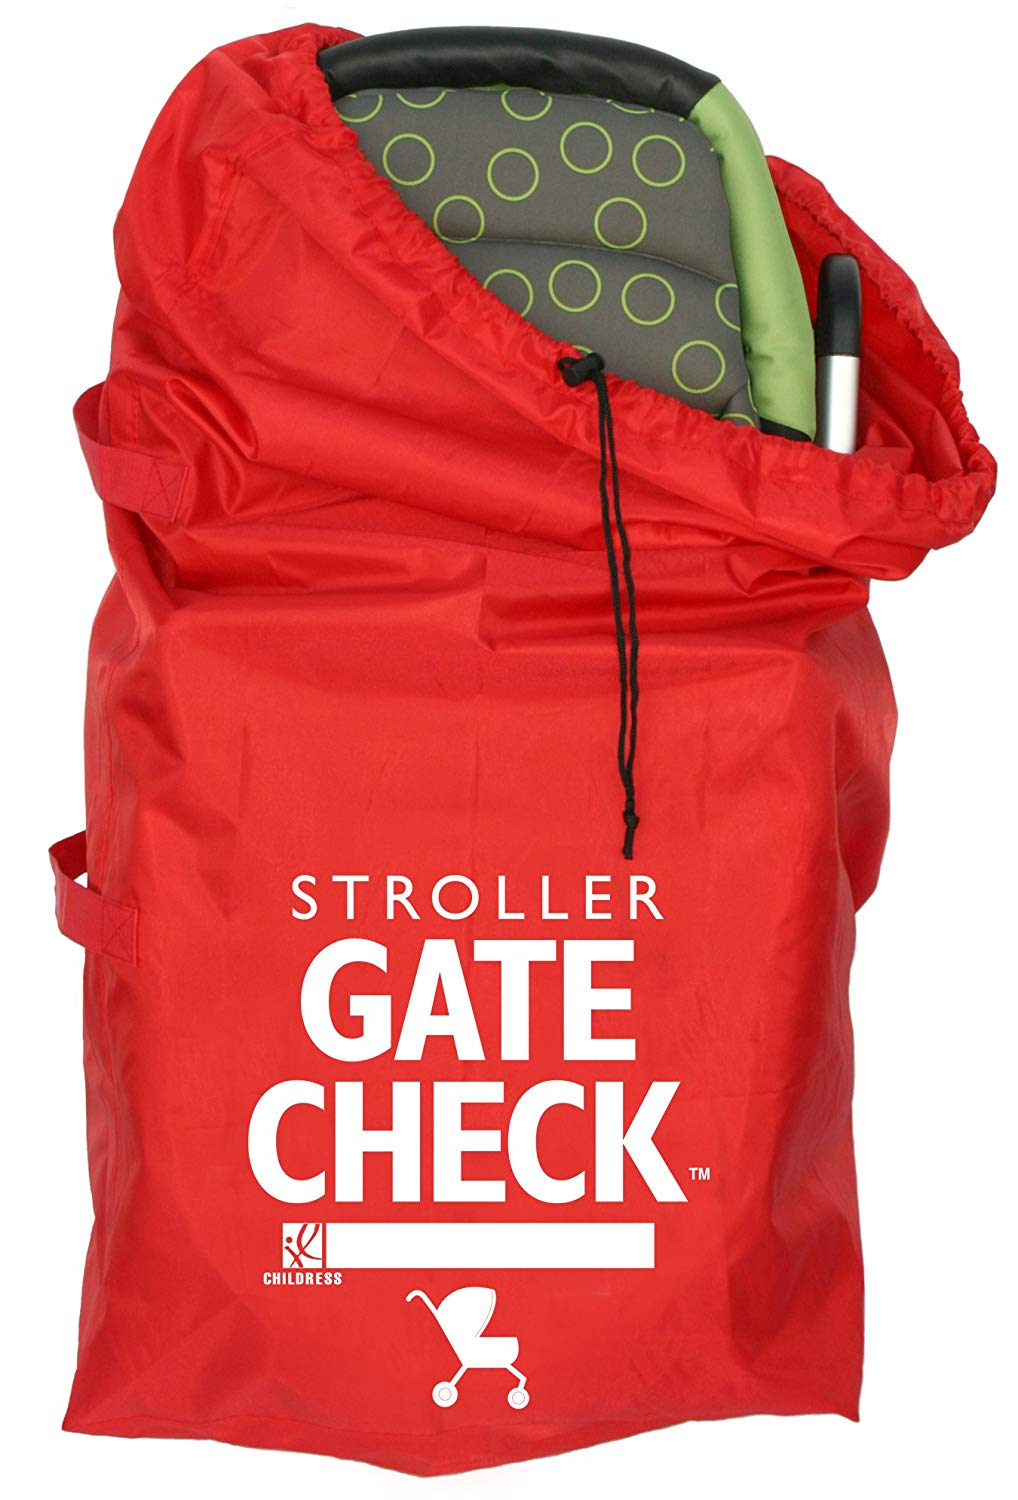 J.L Childress Gate Check Bag for Standard and Double Strollers, Red